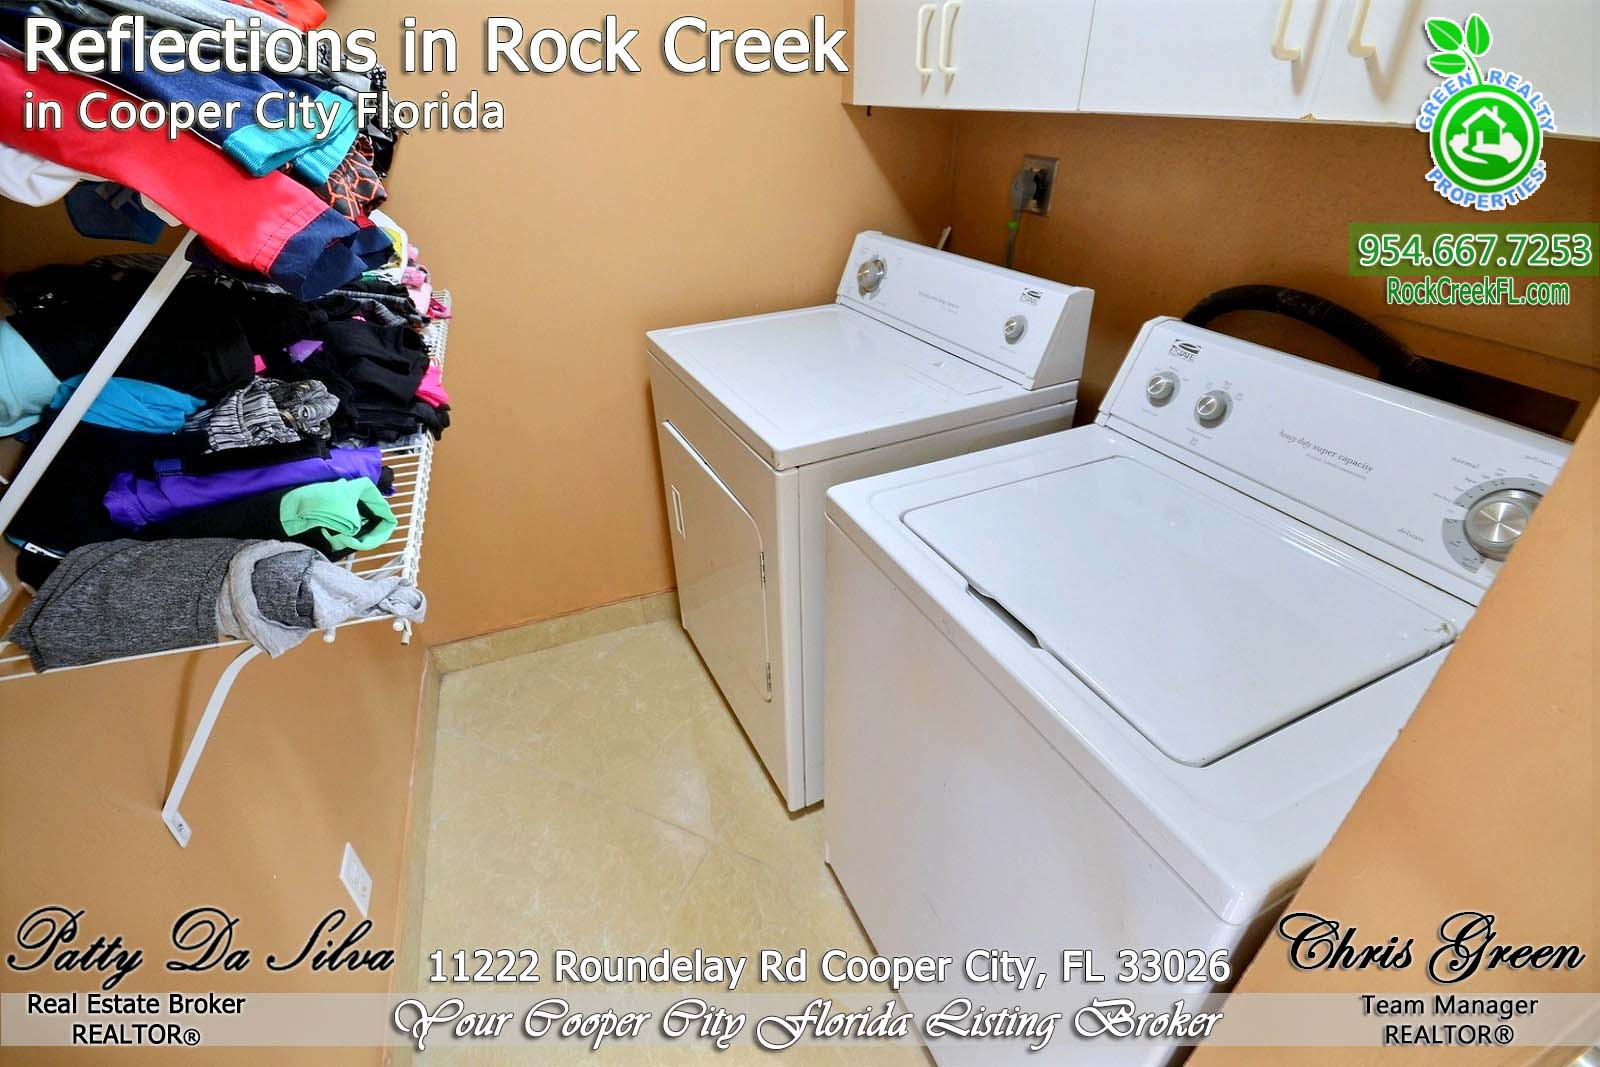 Cooper City Homes For Sale - Reflections in Rock Creek Homes Fo Sale (18)